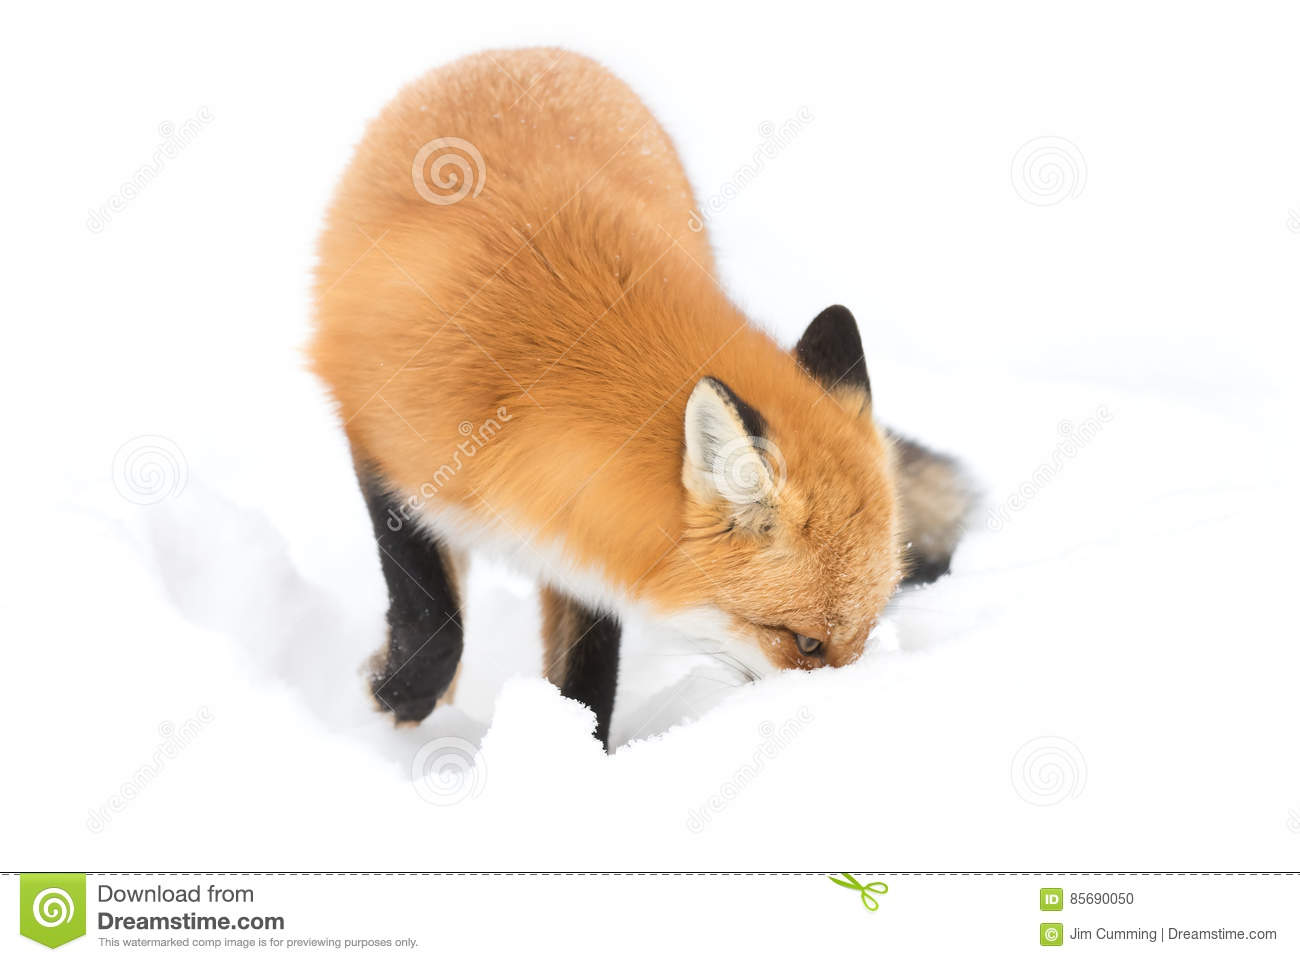 Red fox (Vulpes vulpes) with a bushy tail isolated on white background hunting in the freshly fallen snow in Algonquin